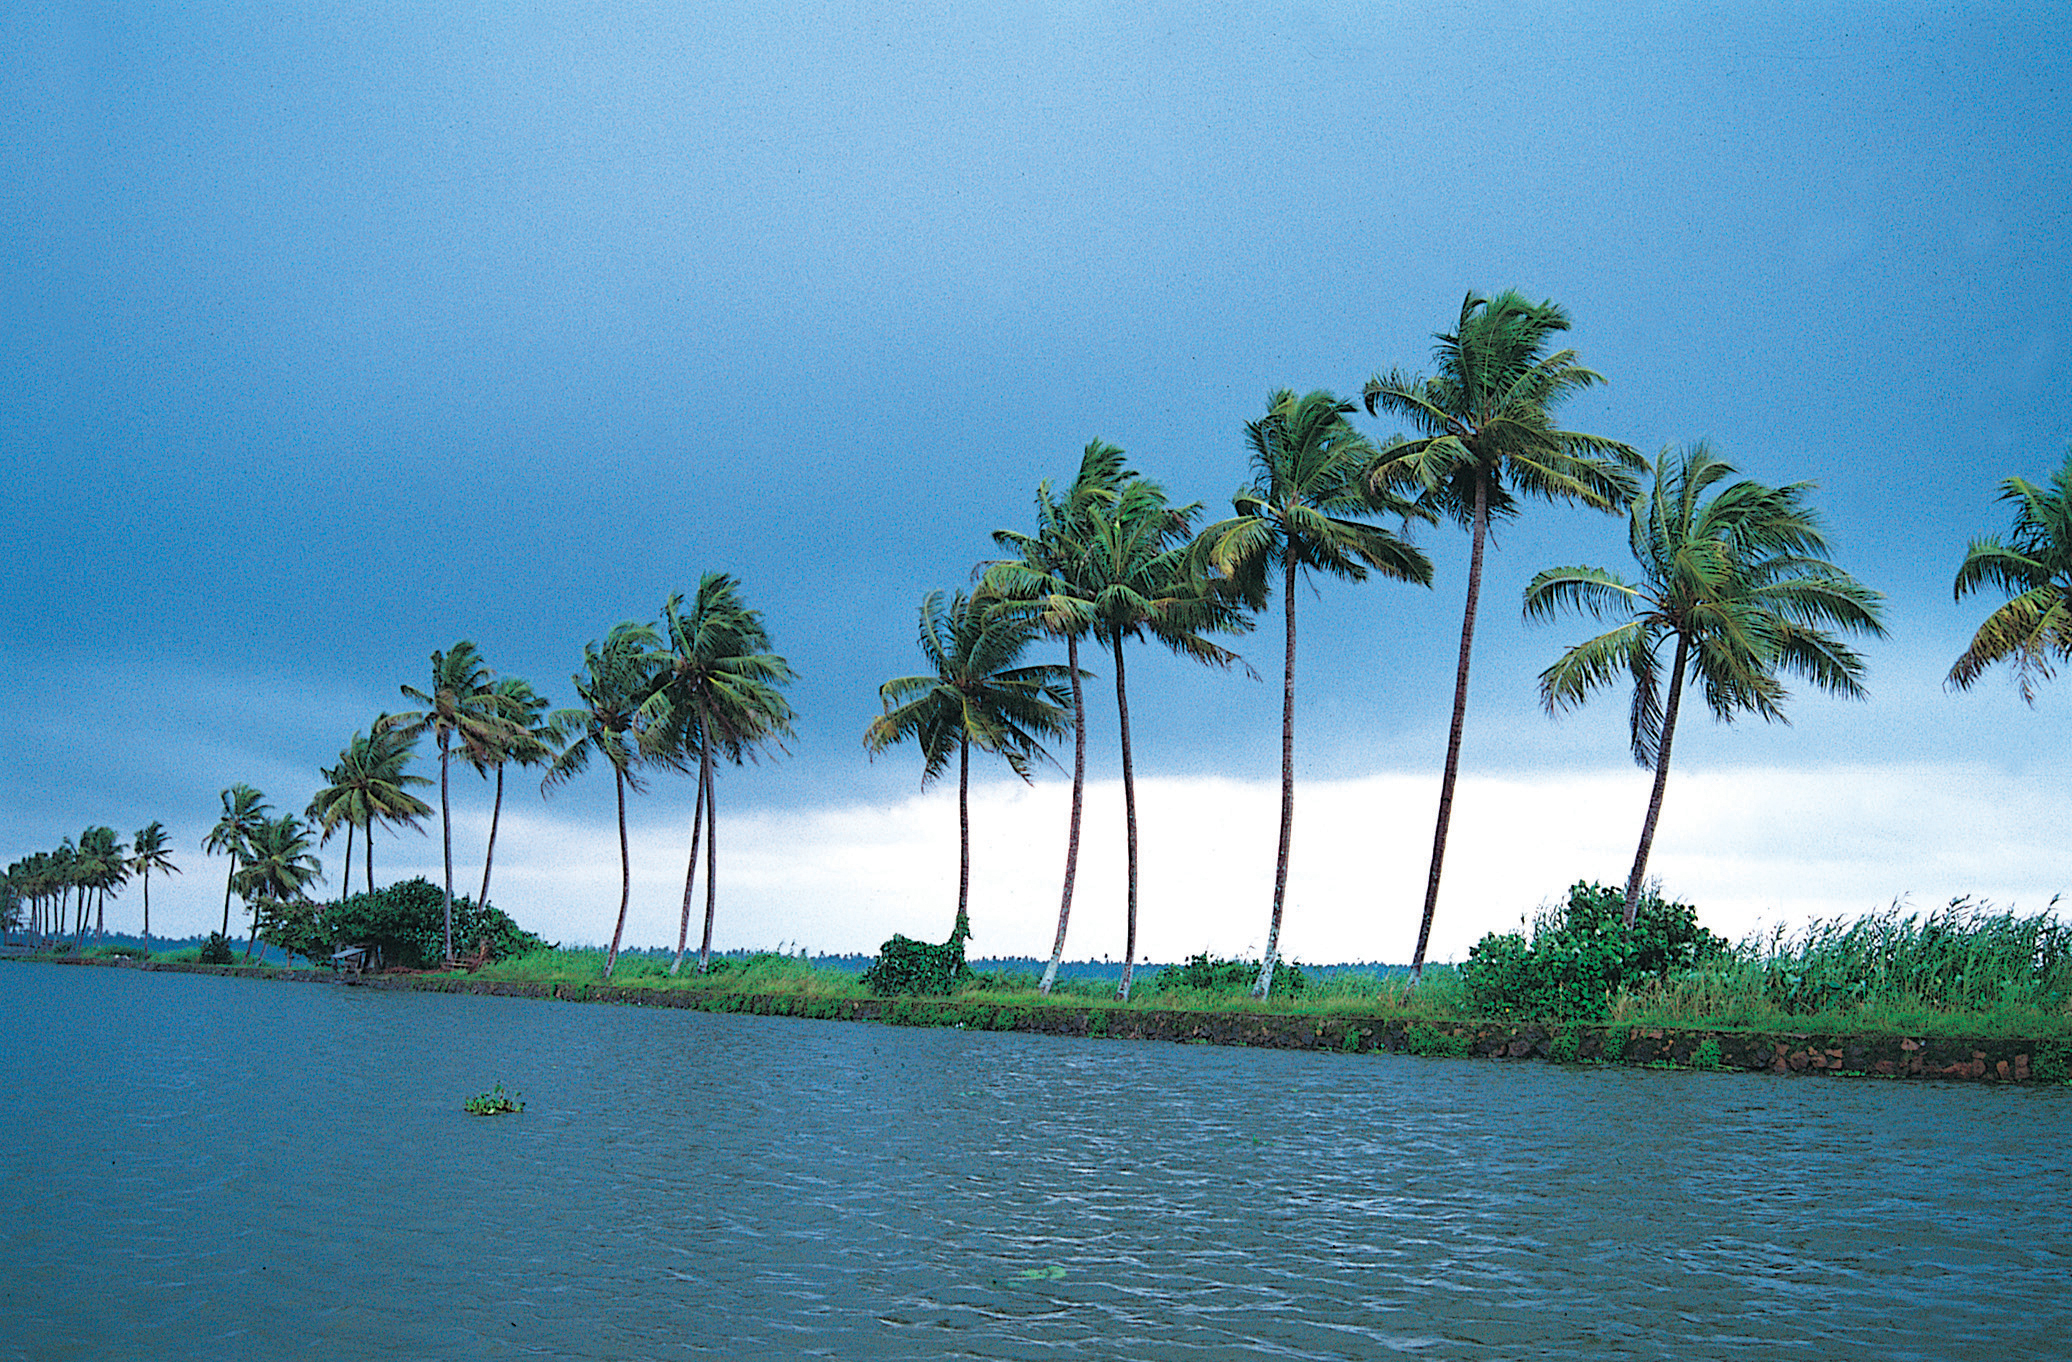 BACKWATER VEMBANADU